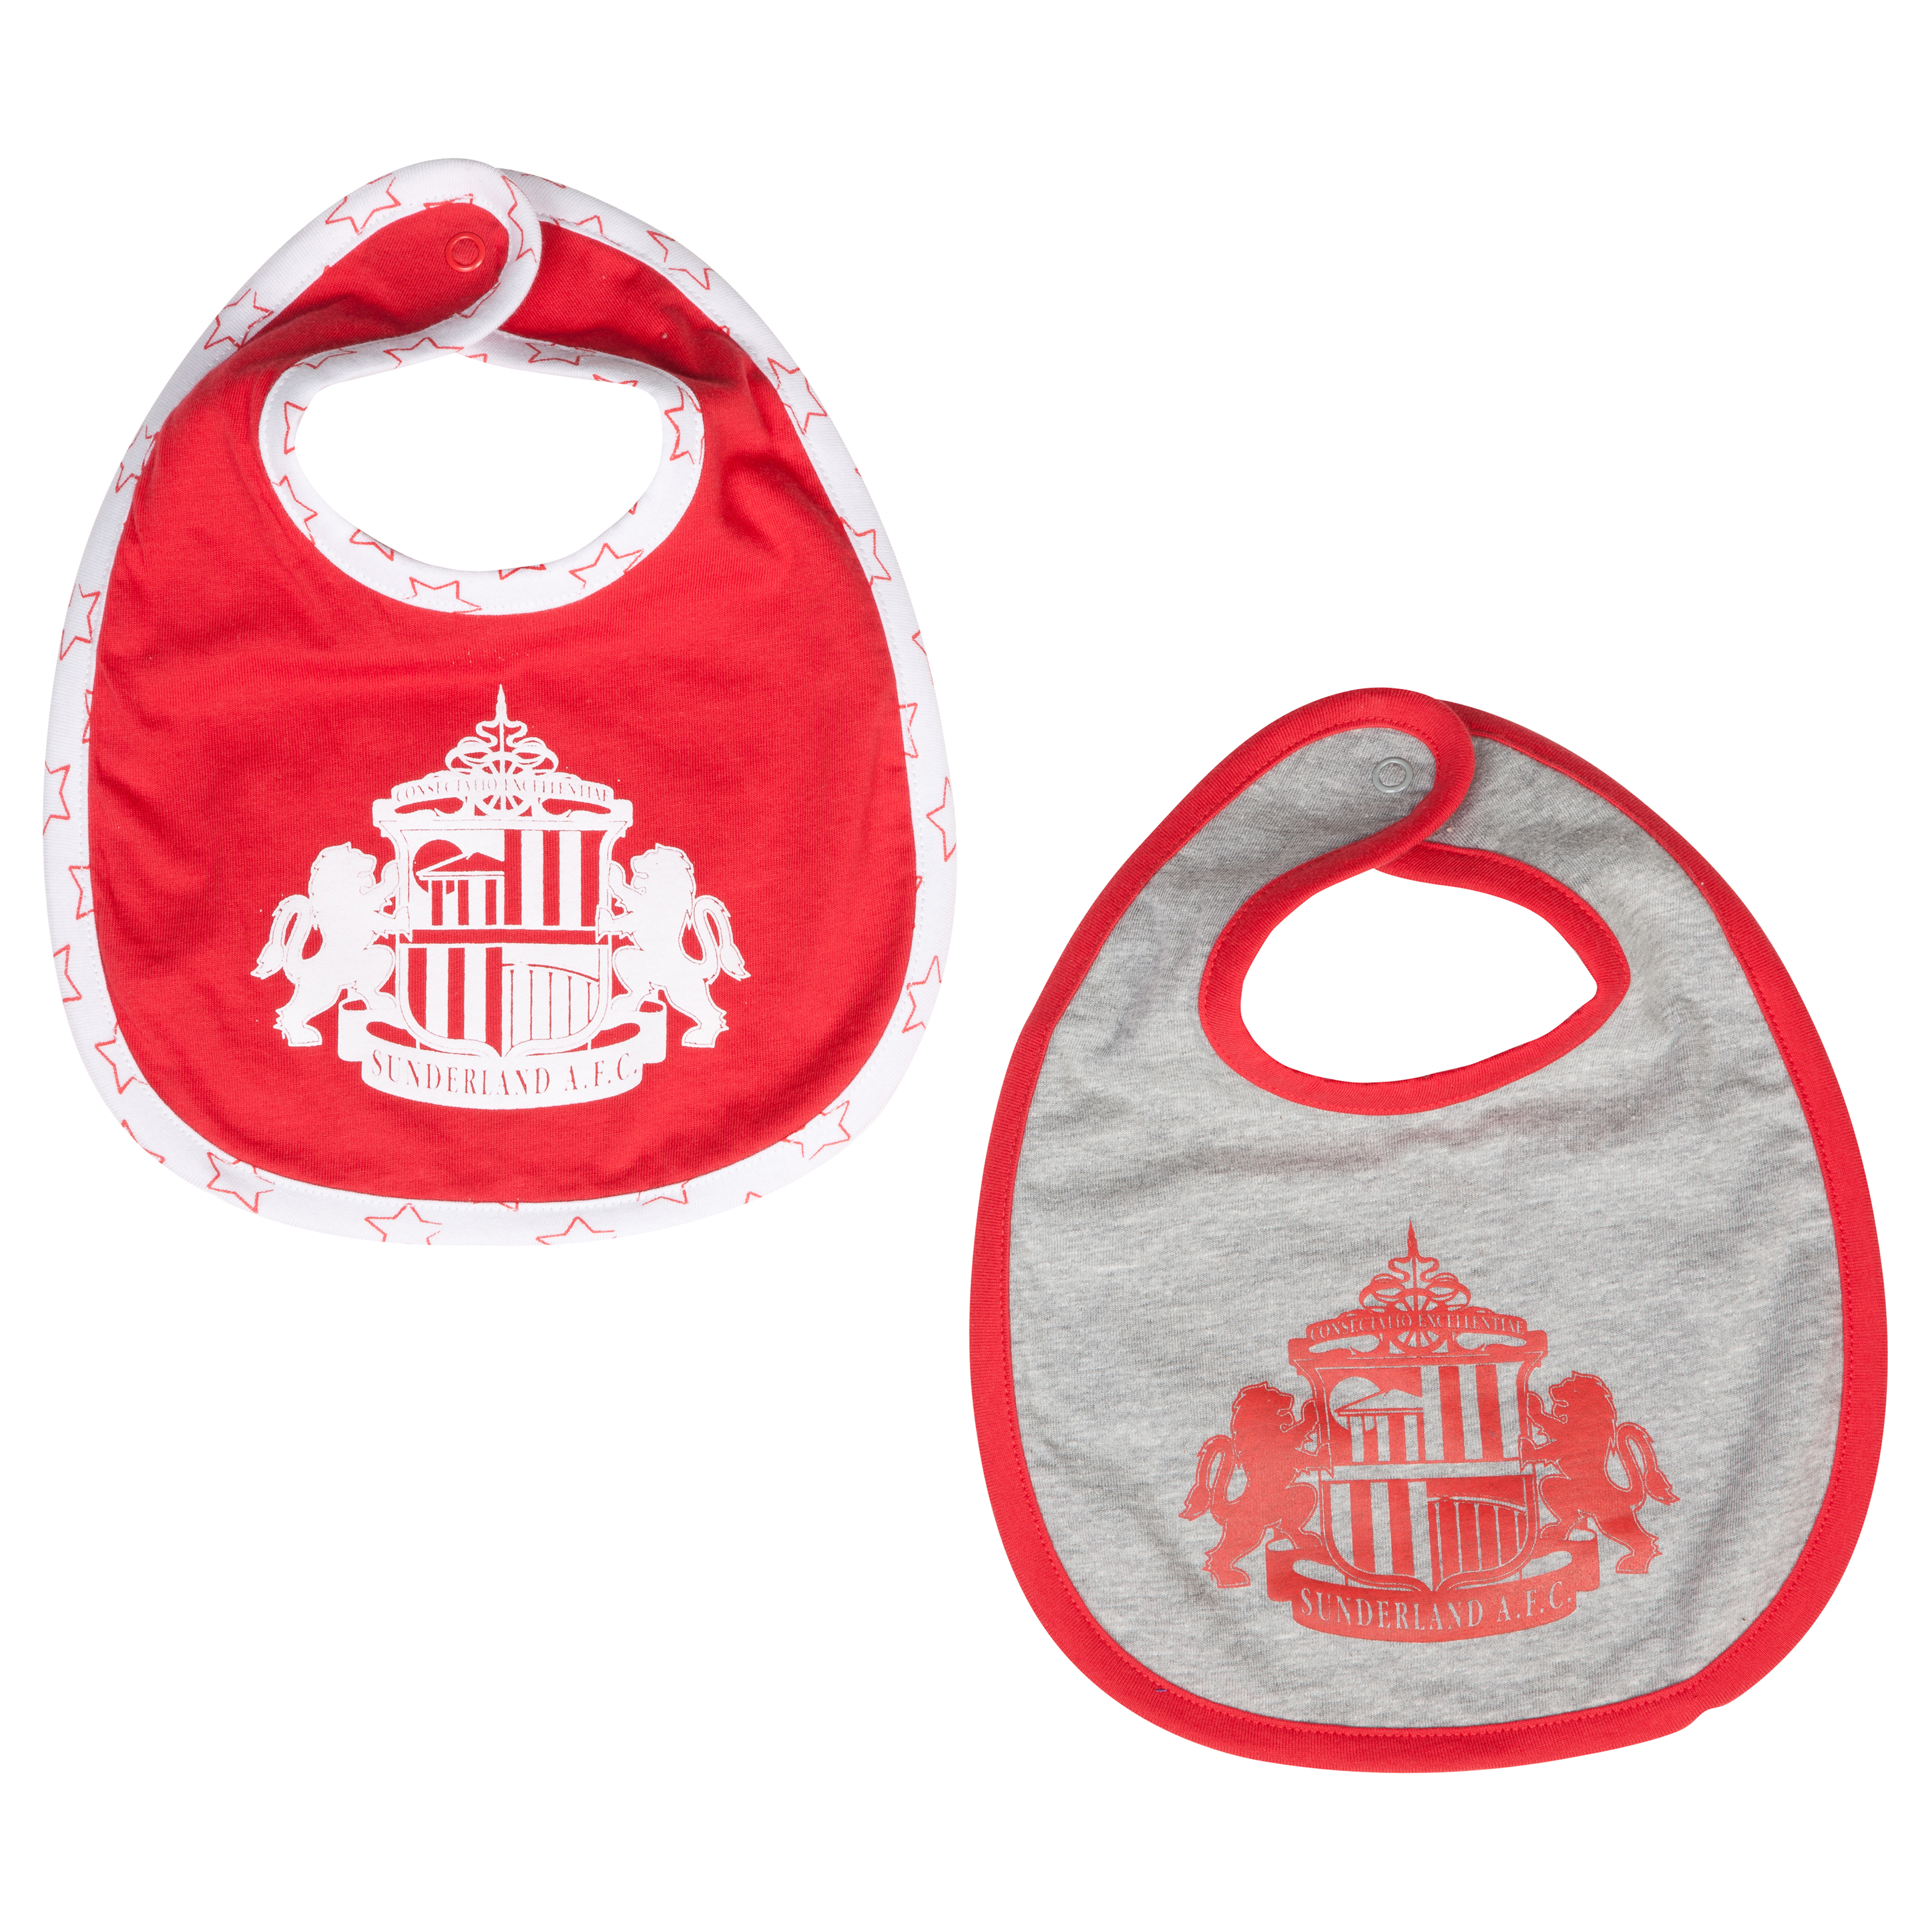 Sunderland Samson Pack of 2 Bibs - Red/White - Baby